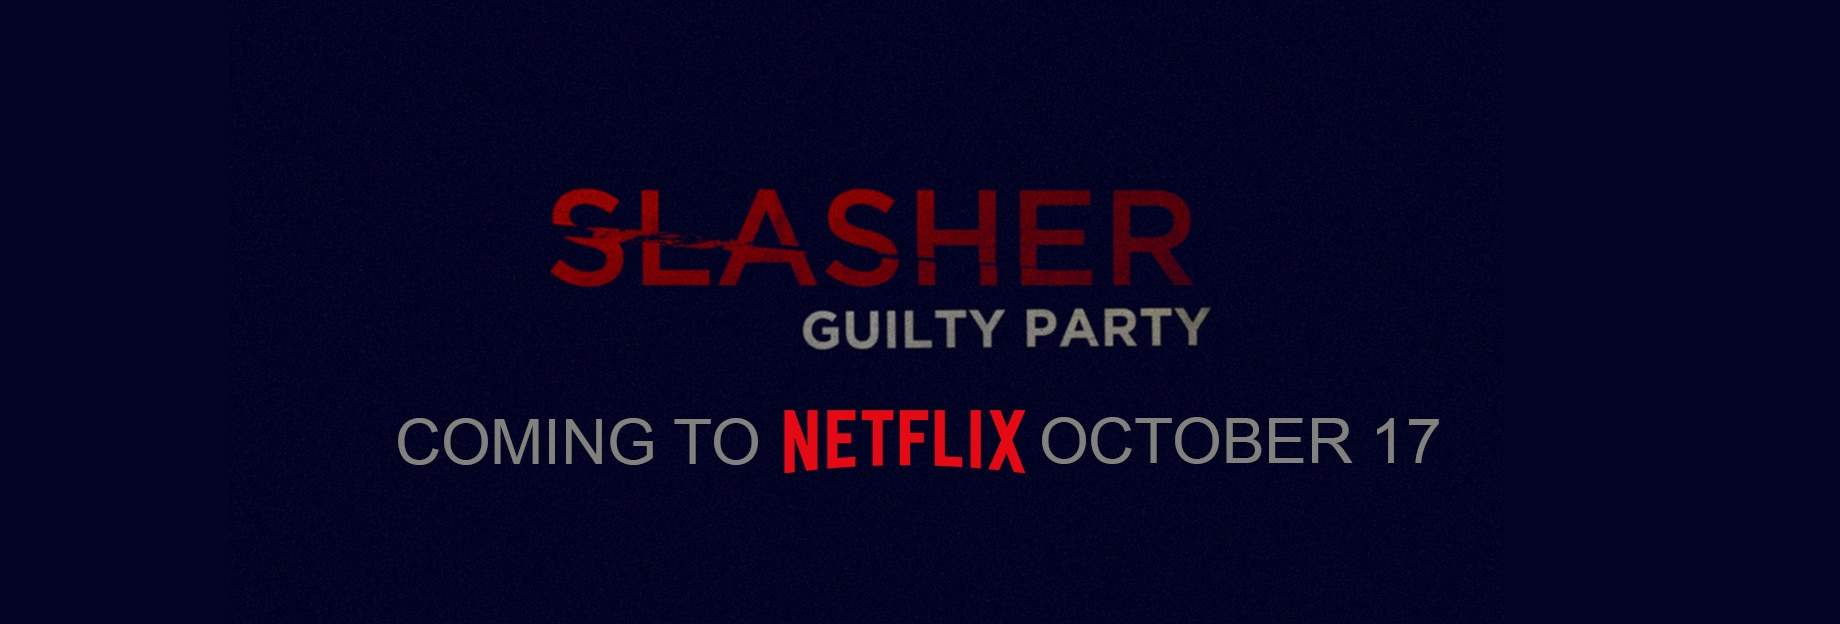 slasher guilty party - Slasher: Guilty Party Hitting Netflix NEXT WEEK!